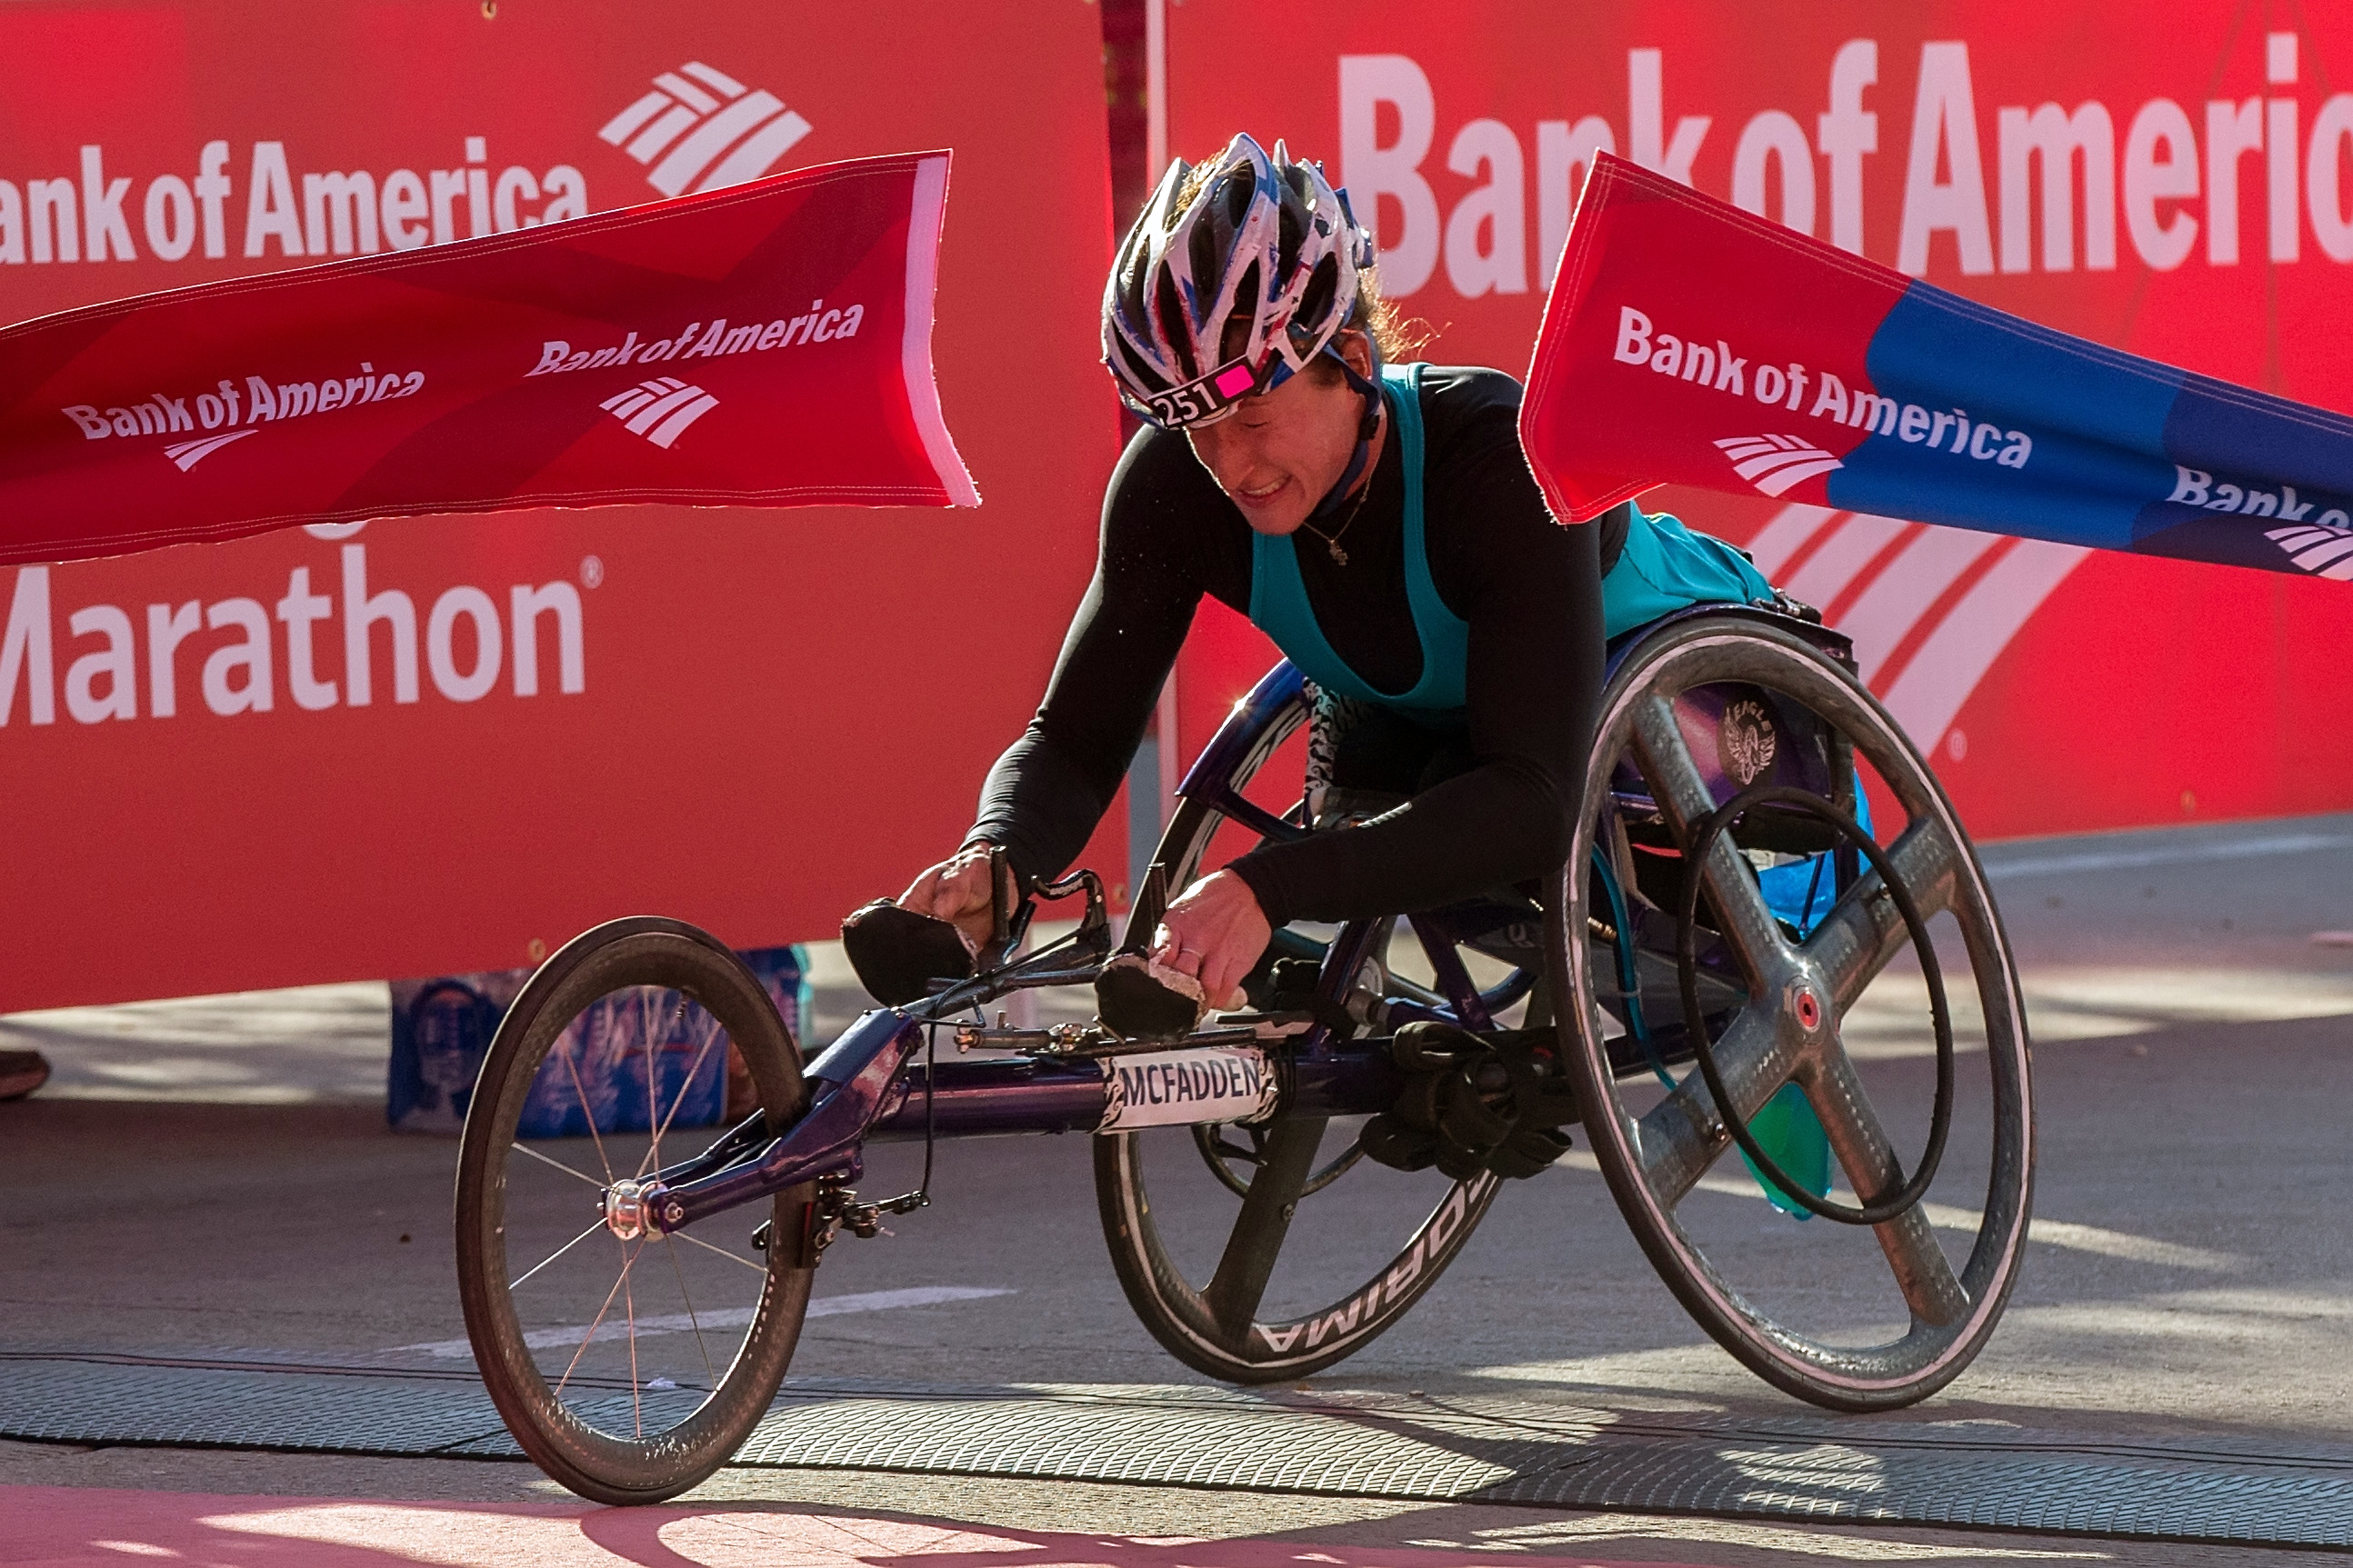 Tatyana McFadden crosses the finish line to win the women's wheelchair race during the Chicago Marathon on Sunday, Oct. 12, 2014, in Chicago. Chicago's 37th annual race included a field of 108 elite men, women and wheelchair athletes. (AP Photo/Andrew A. Nelles)